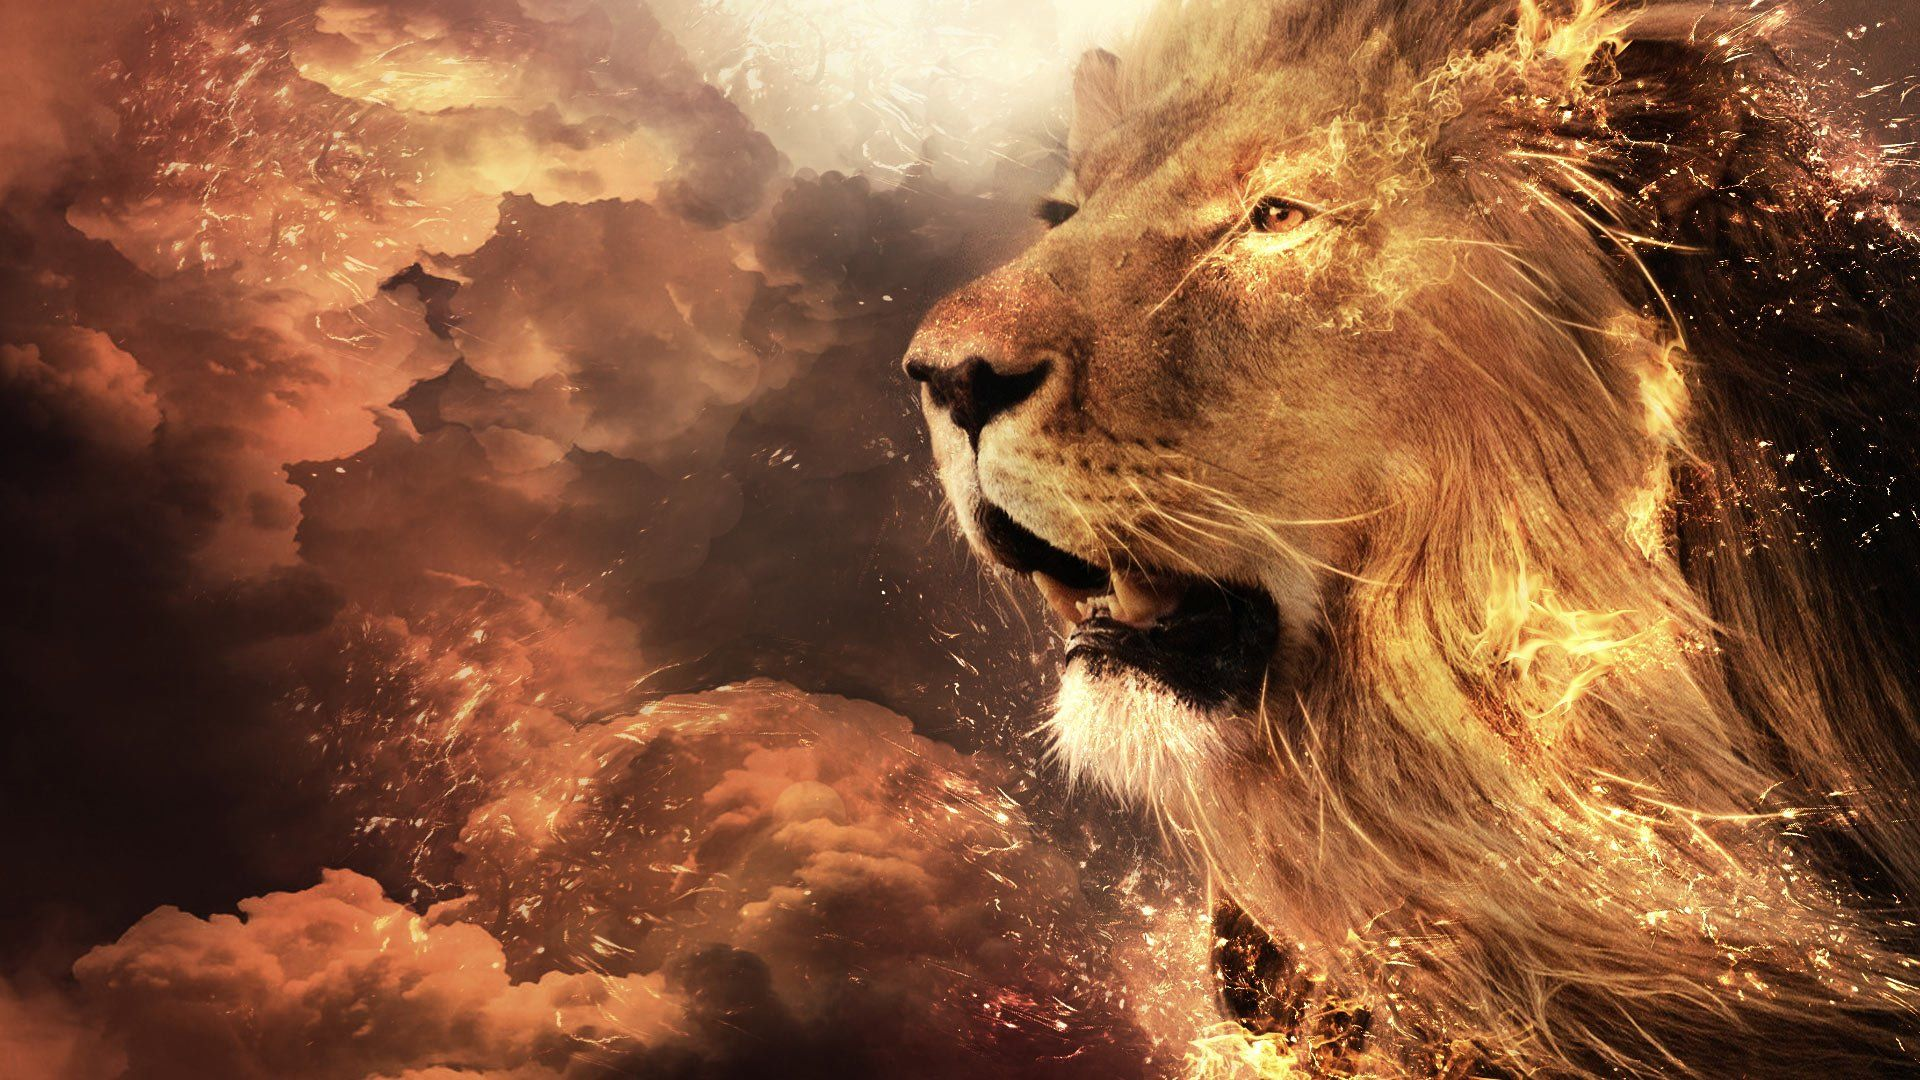 Fire Lion Hd Wallpaper Animais Le 227 O Papel De Parede Drapieżne Koty Pinterest